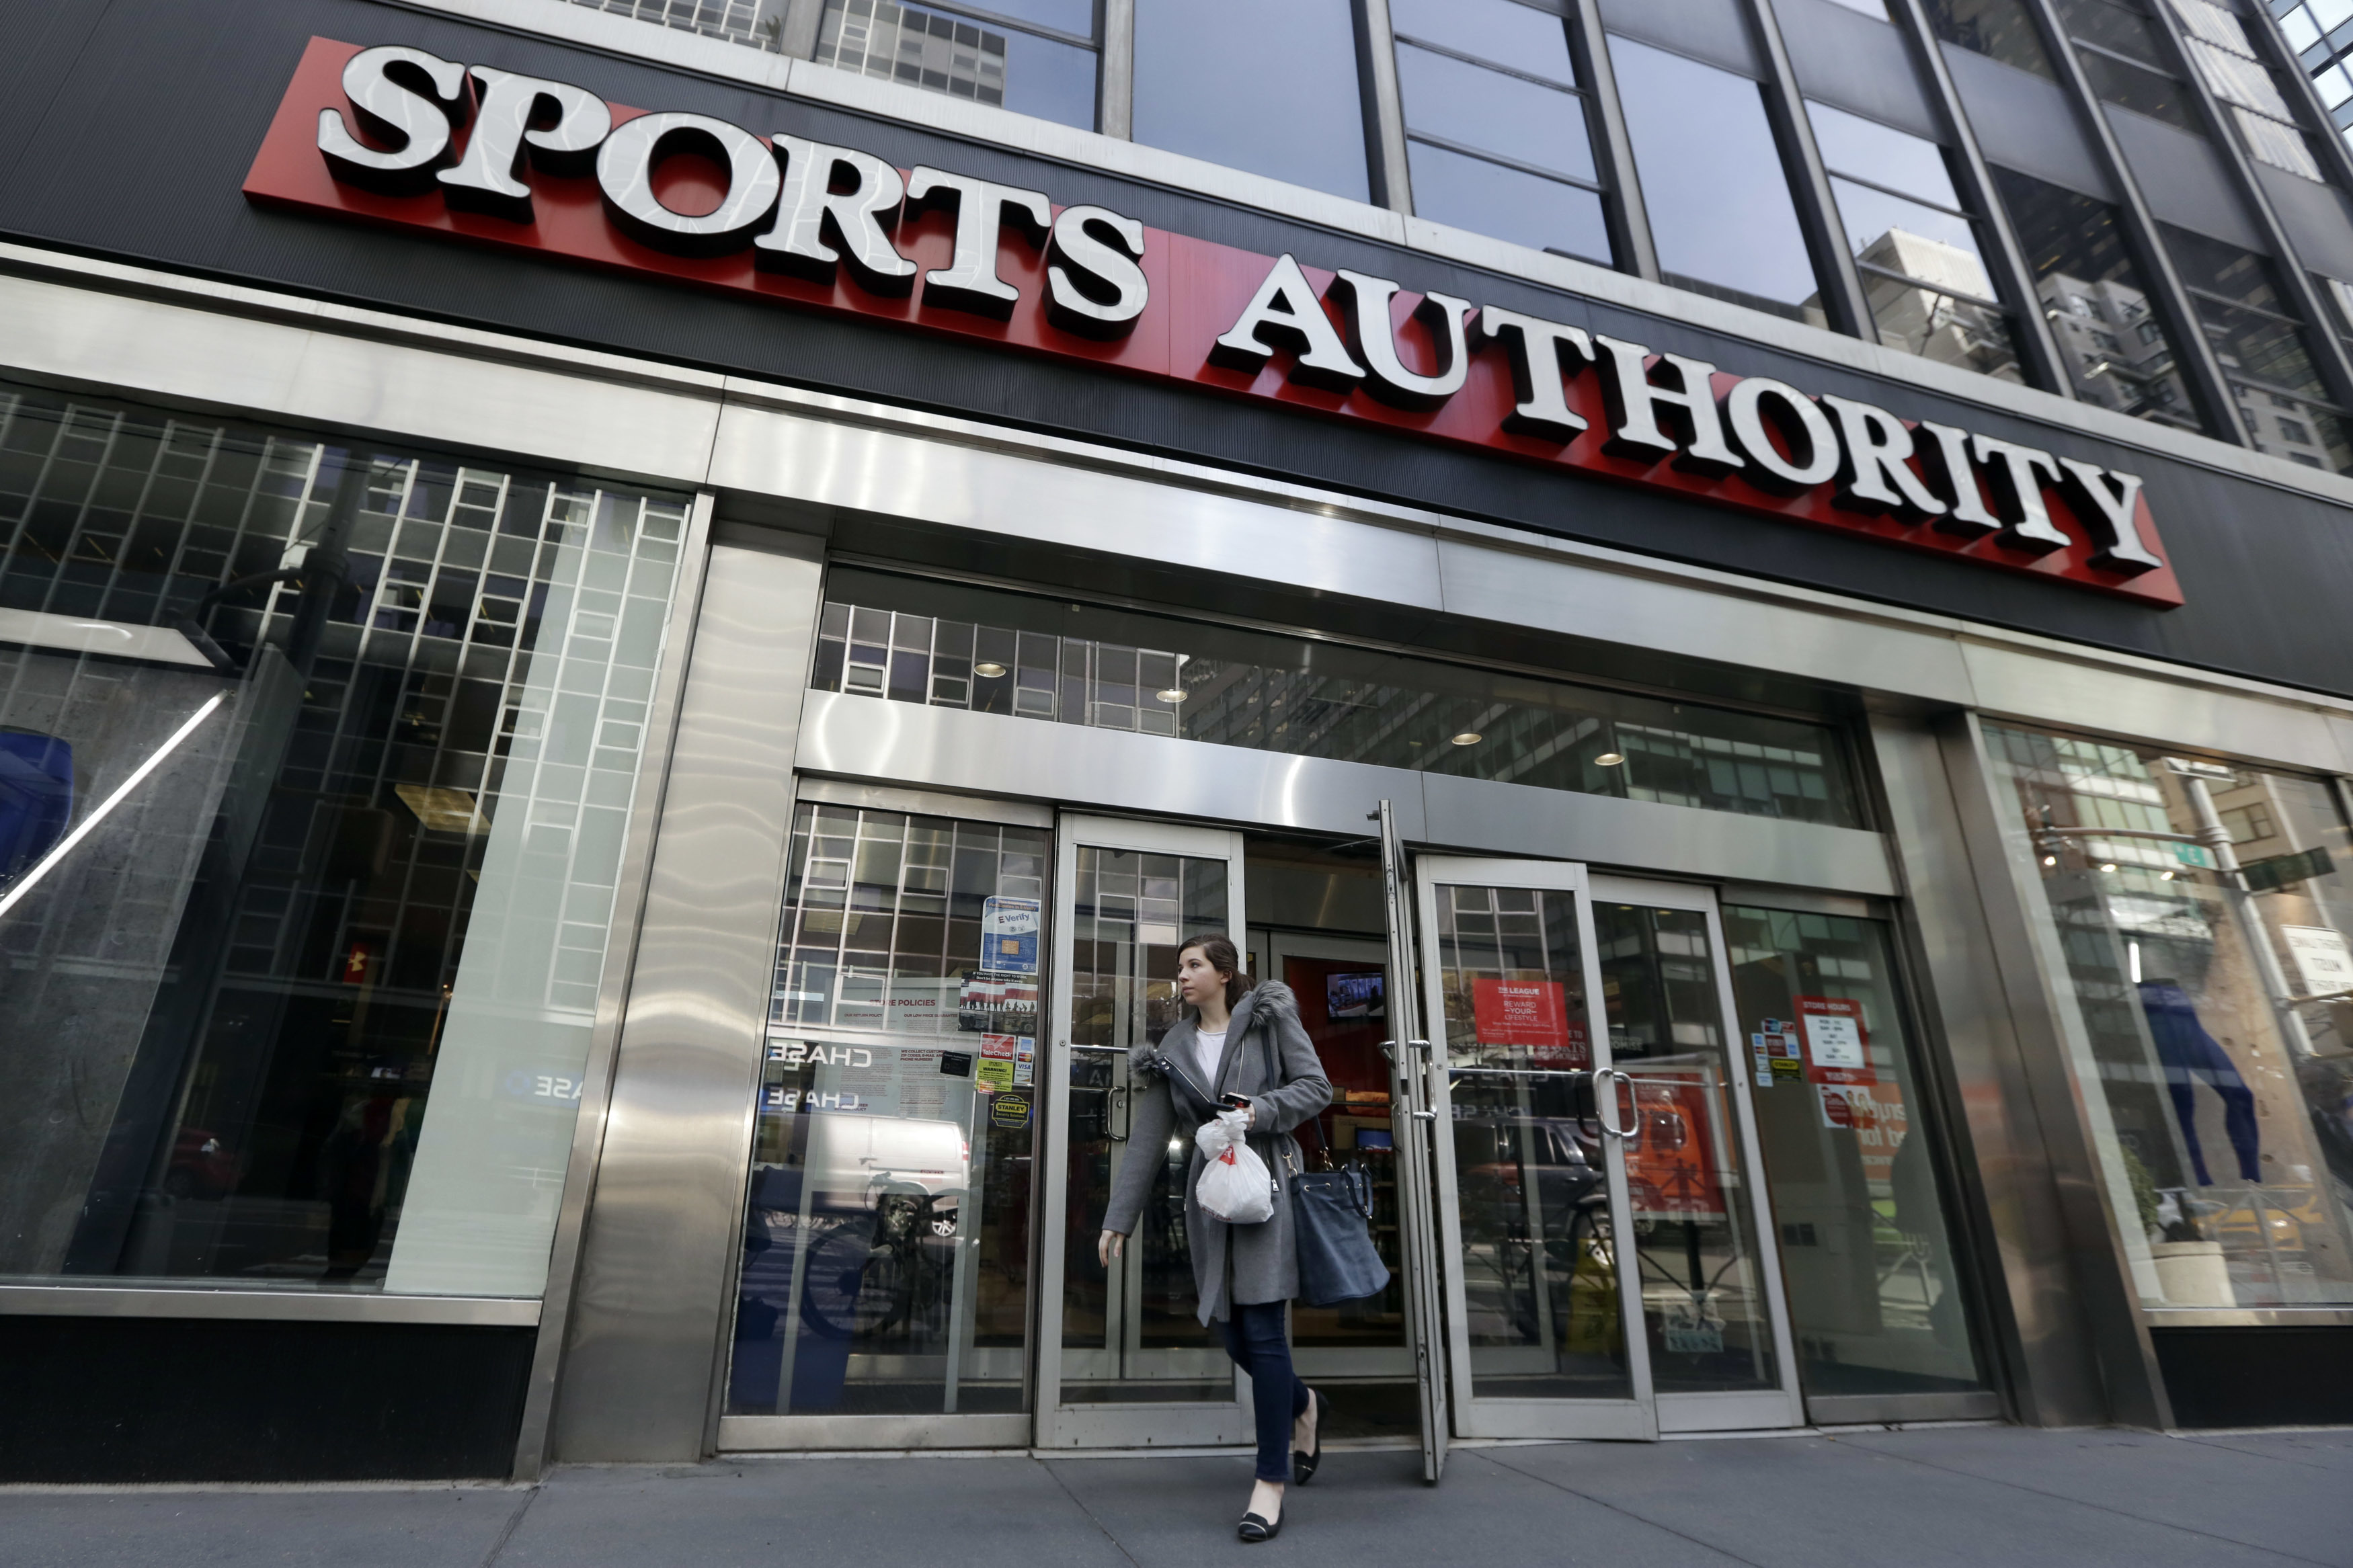 Photo: Sports Authority store in New York (AP Photo)